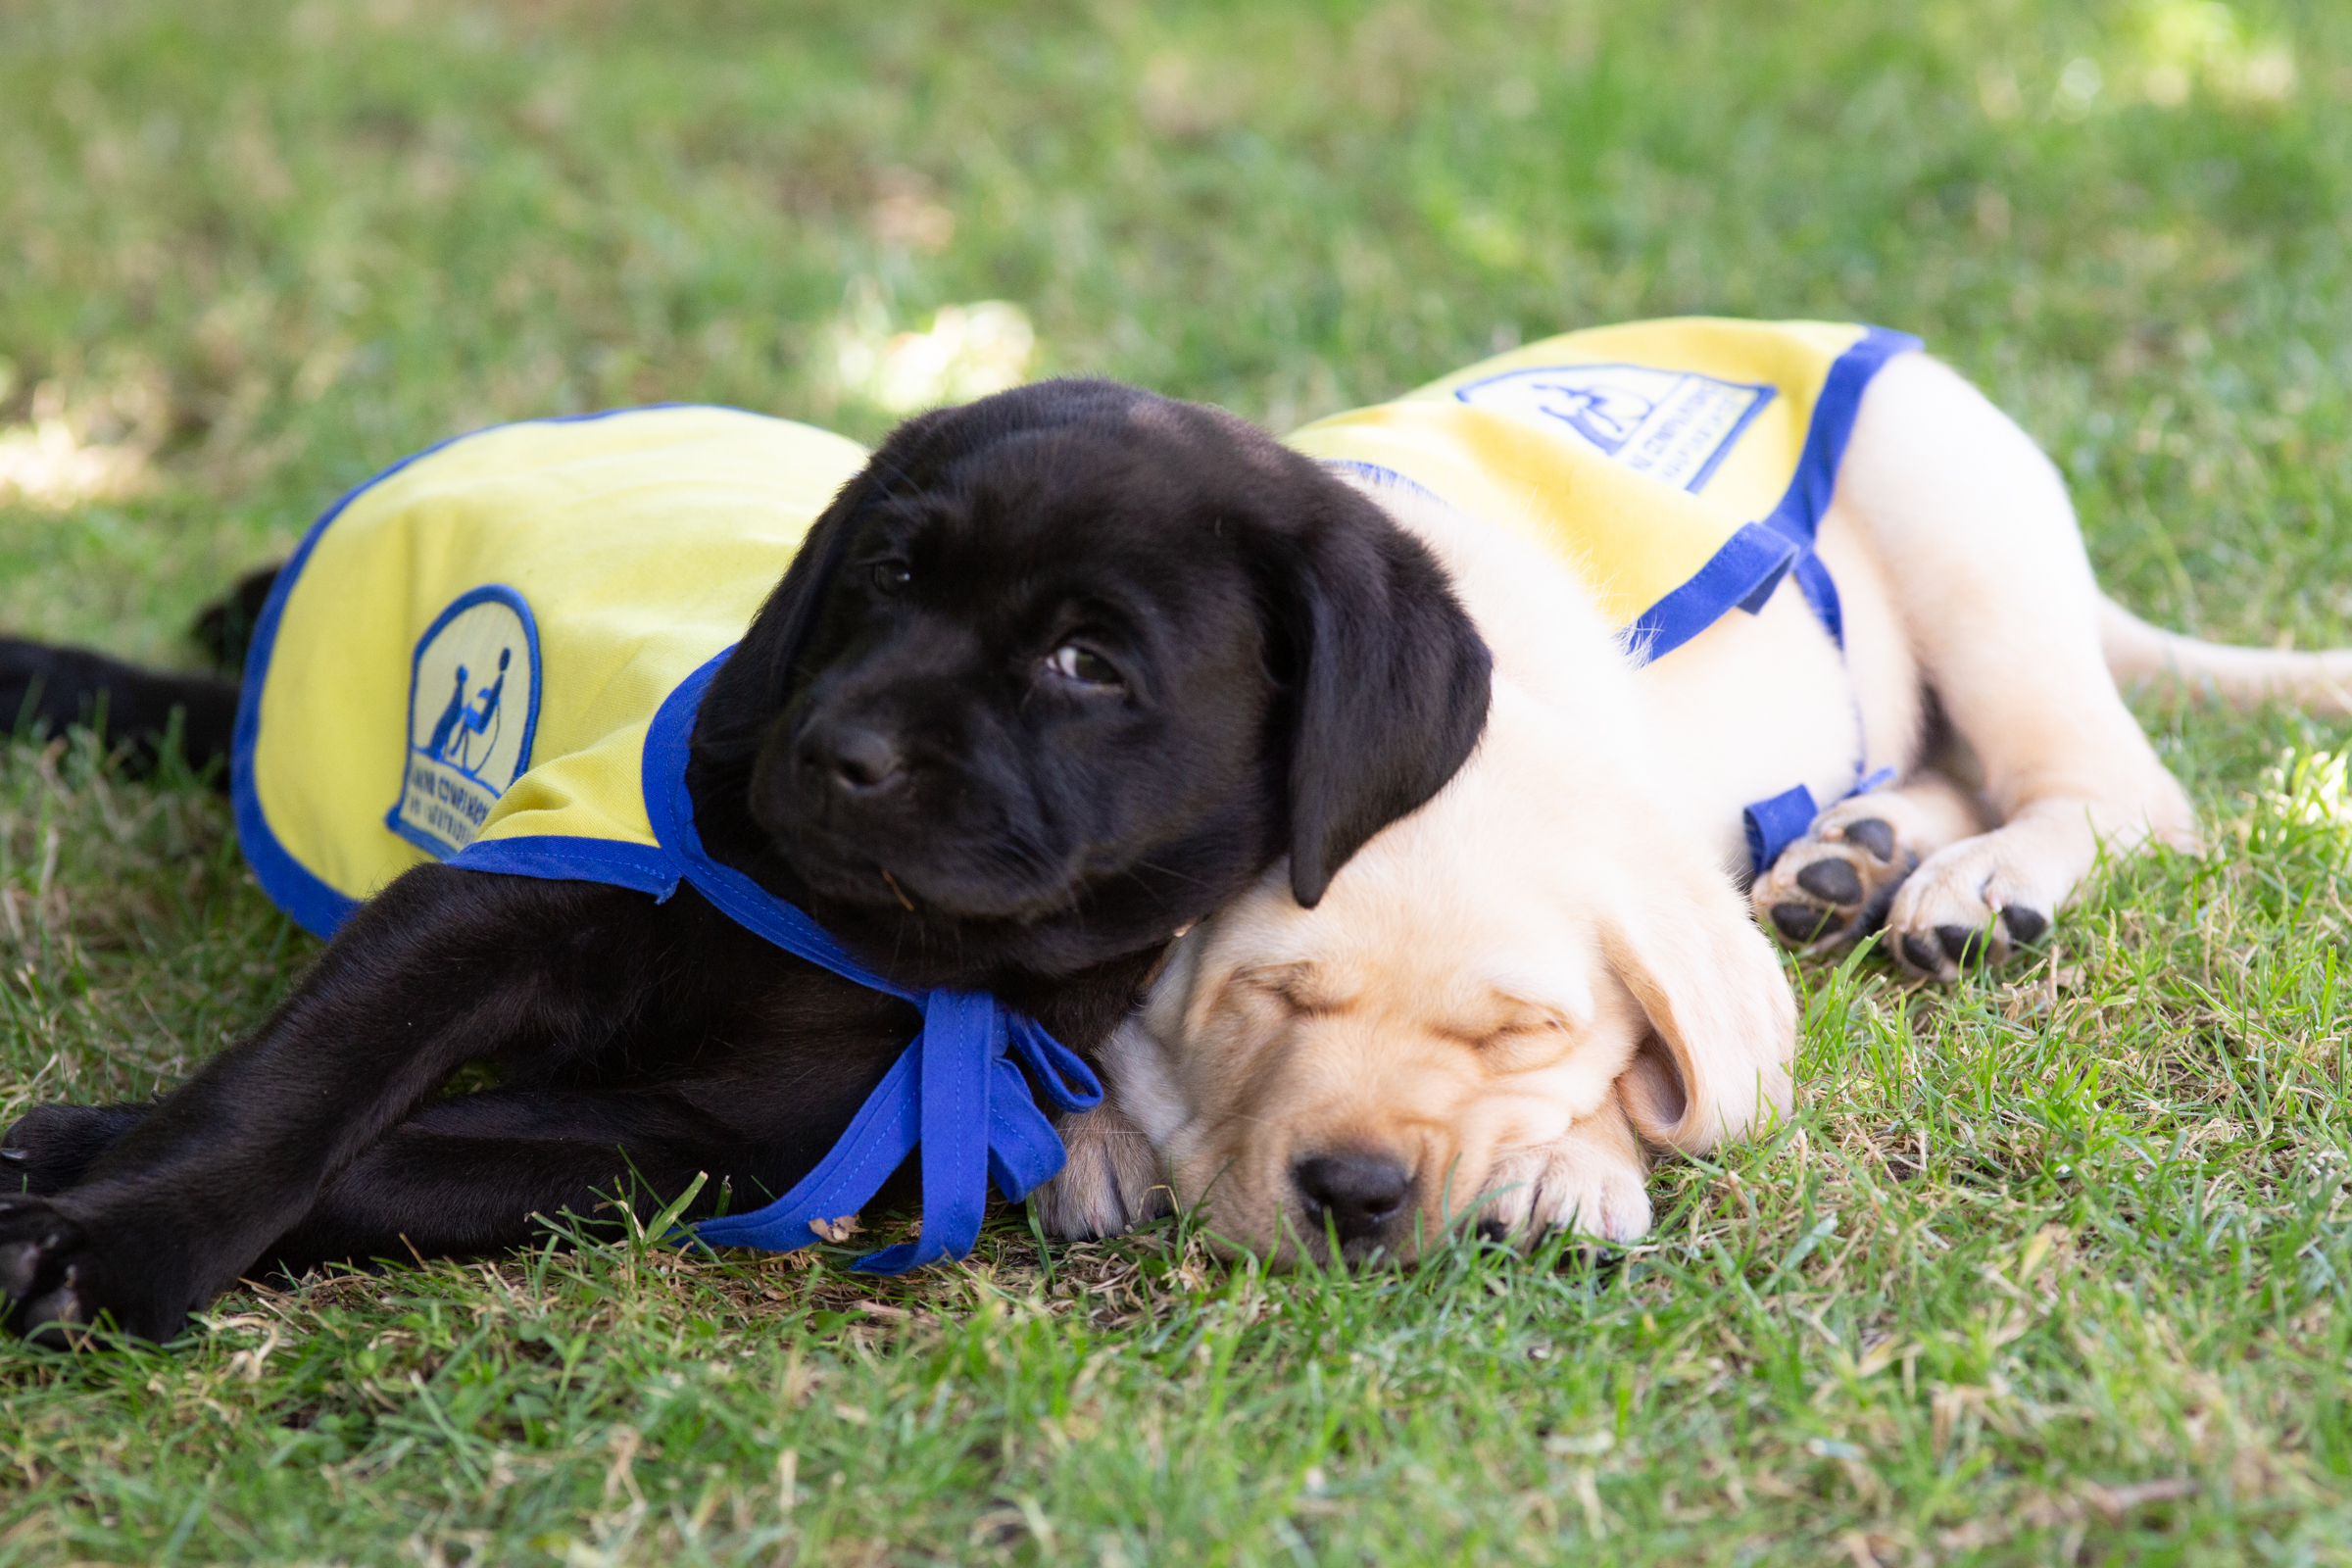 Black lab puppy laying on yellow lab puppy in Canine Companions puppy capes